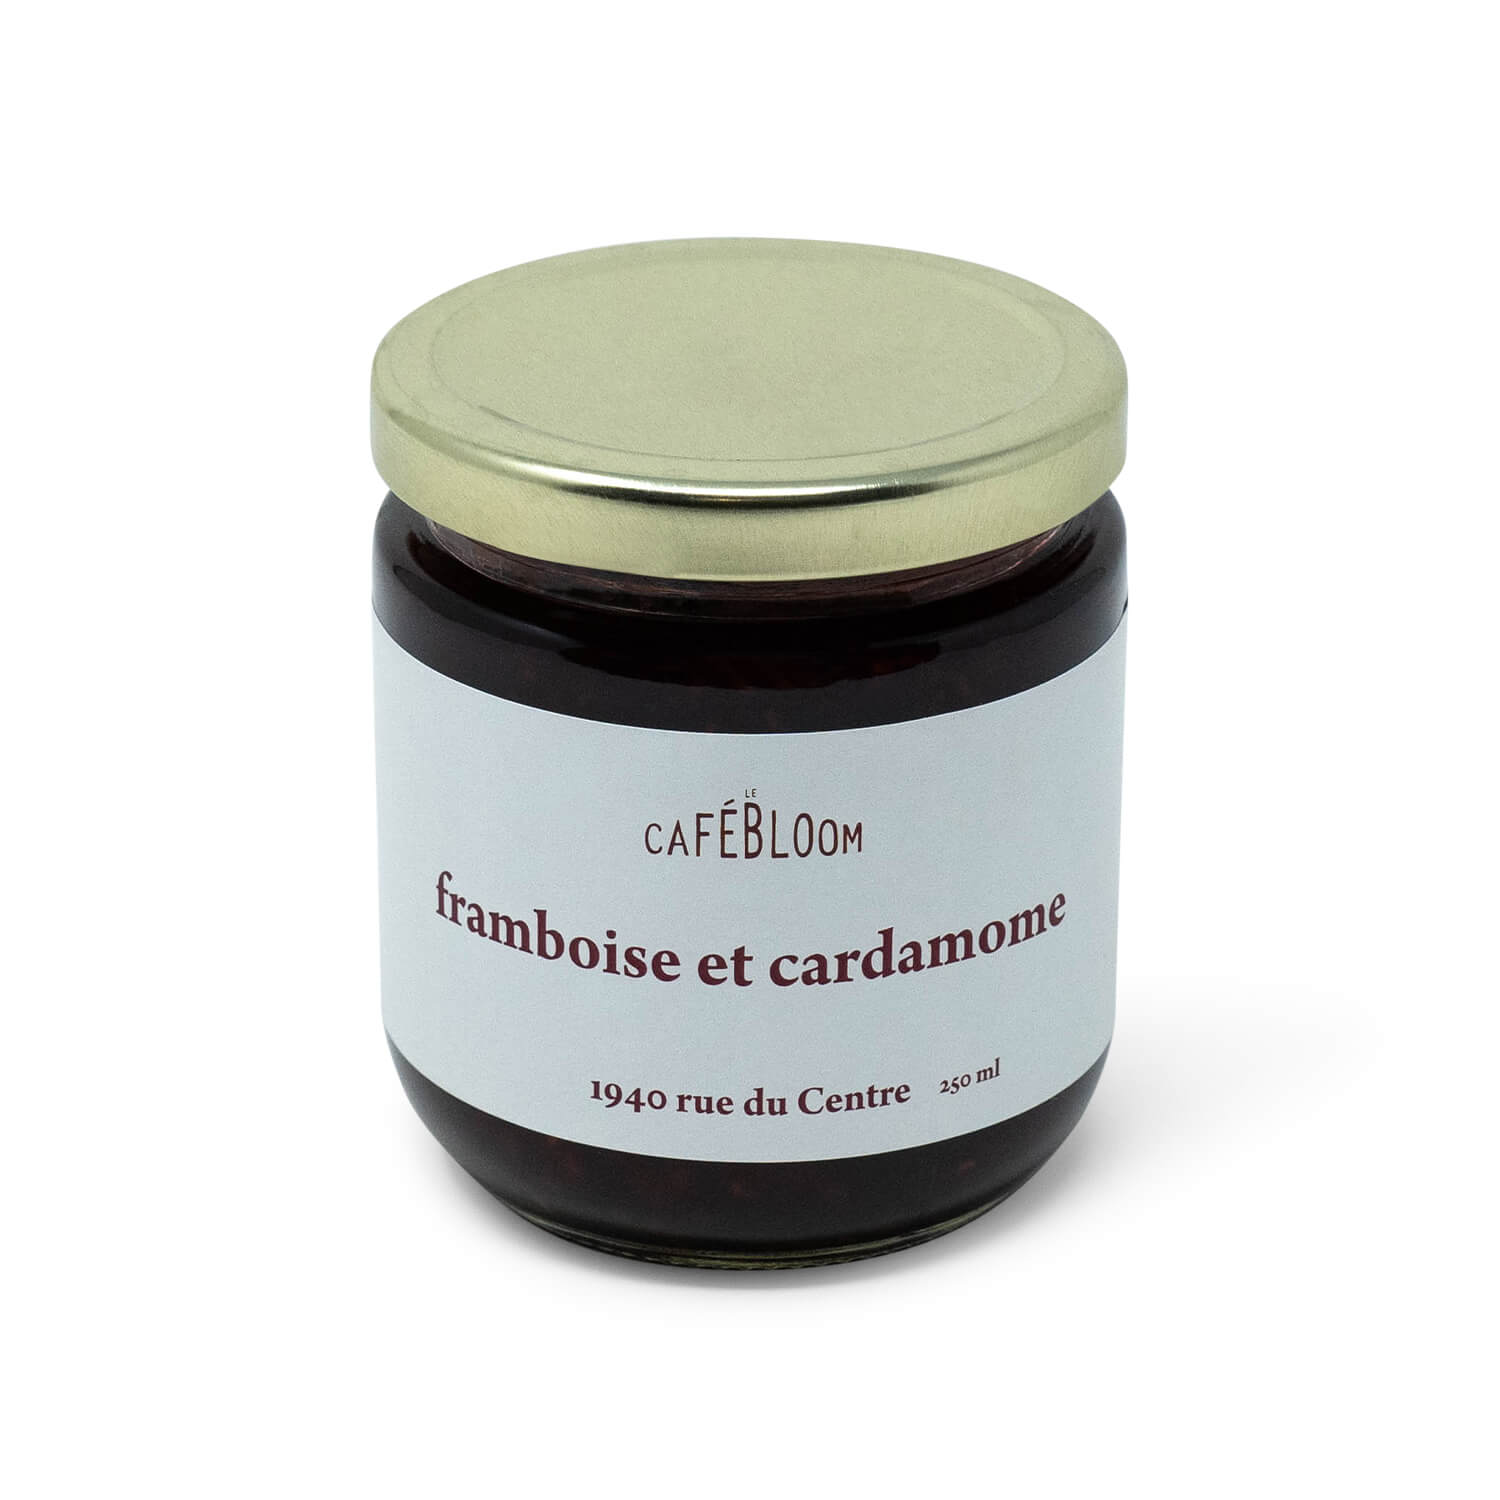 Le Café Bloom Raspberry and Cardamom Jam (250ml)